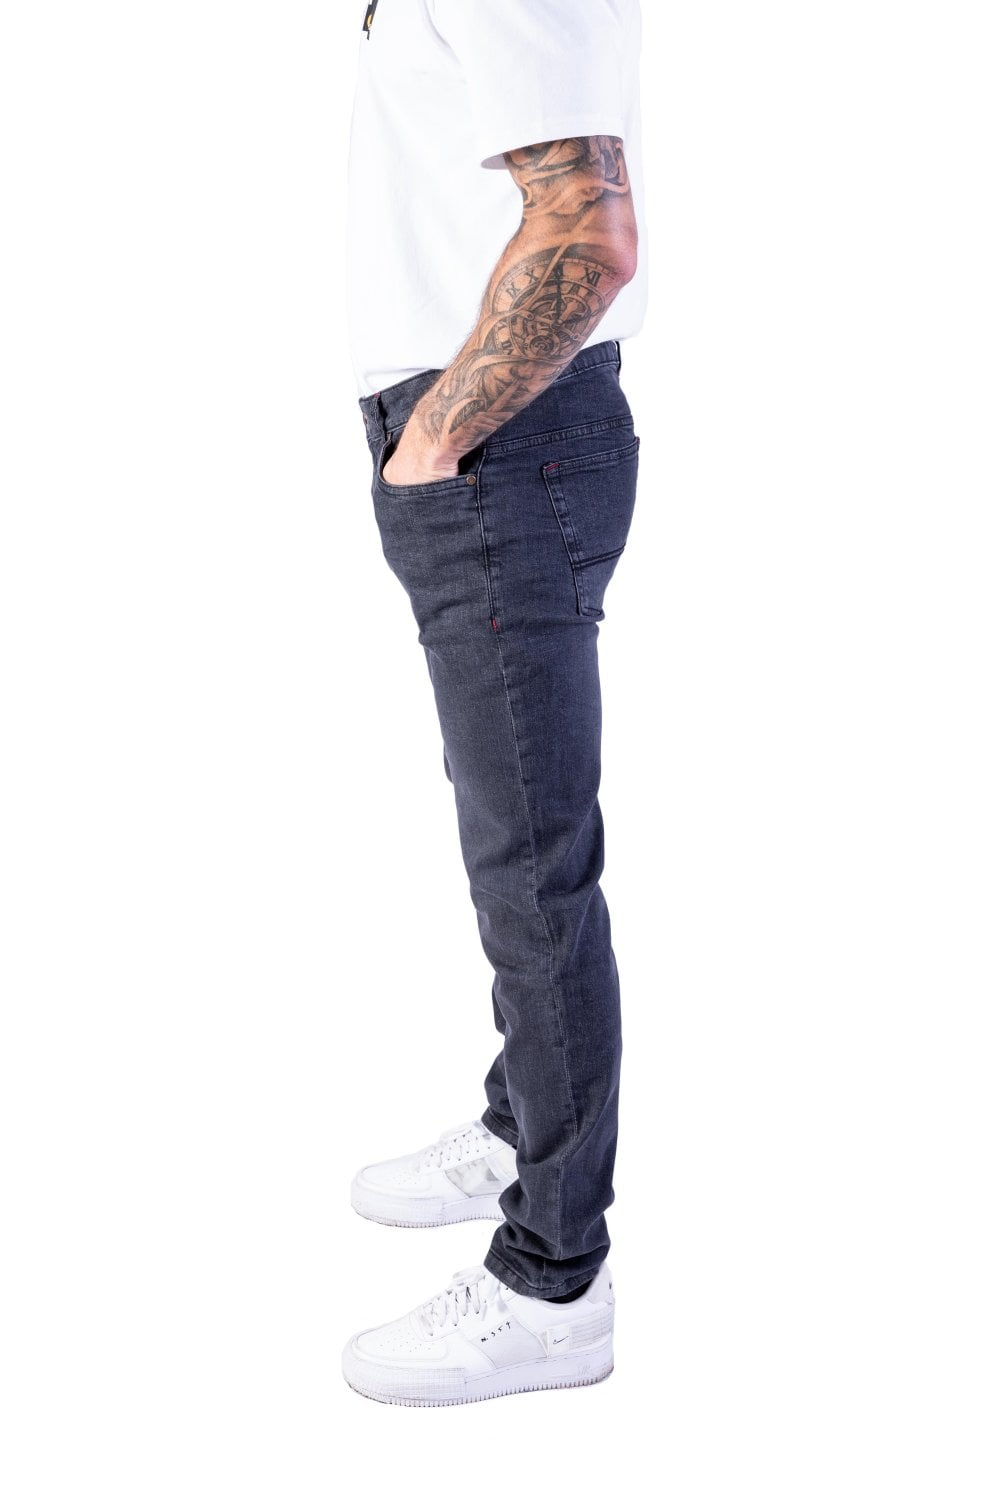 French Connection Mens Striped Trousers Marine/Light Grey £ Save £ Whether you are relaxing at home or jogging around the park we have a range of mens trousers in a variety of styles and fabrics to suit any occasion or task. Browse over 60 styles of mens joggers.